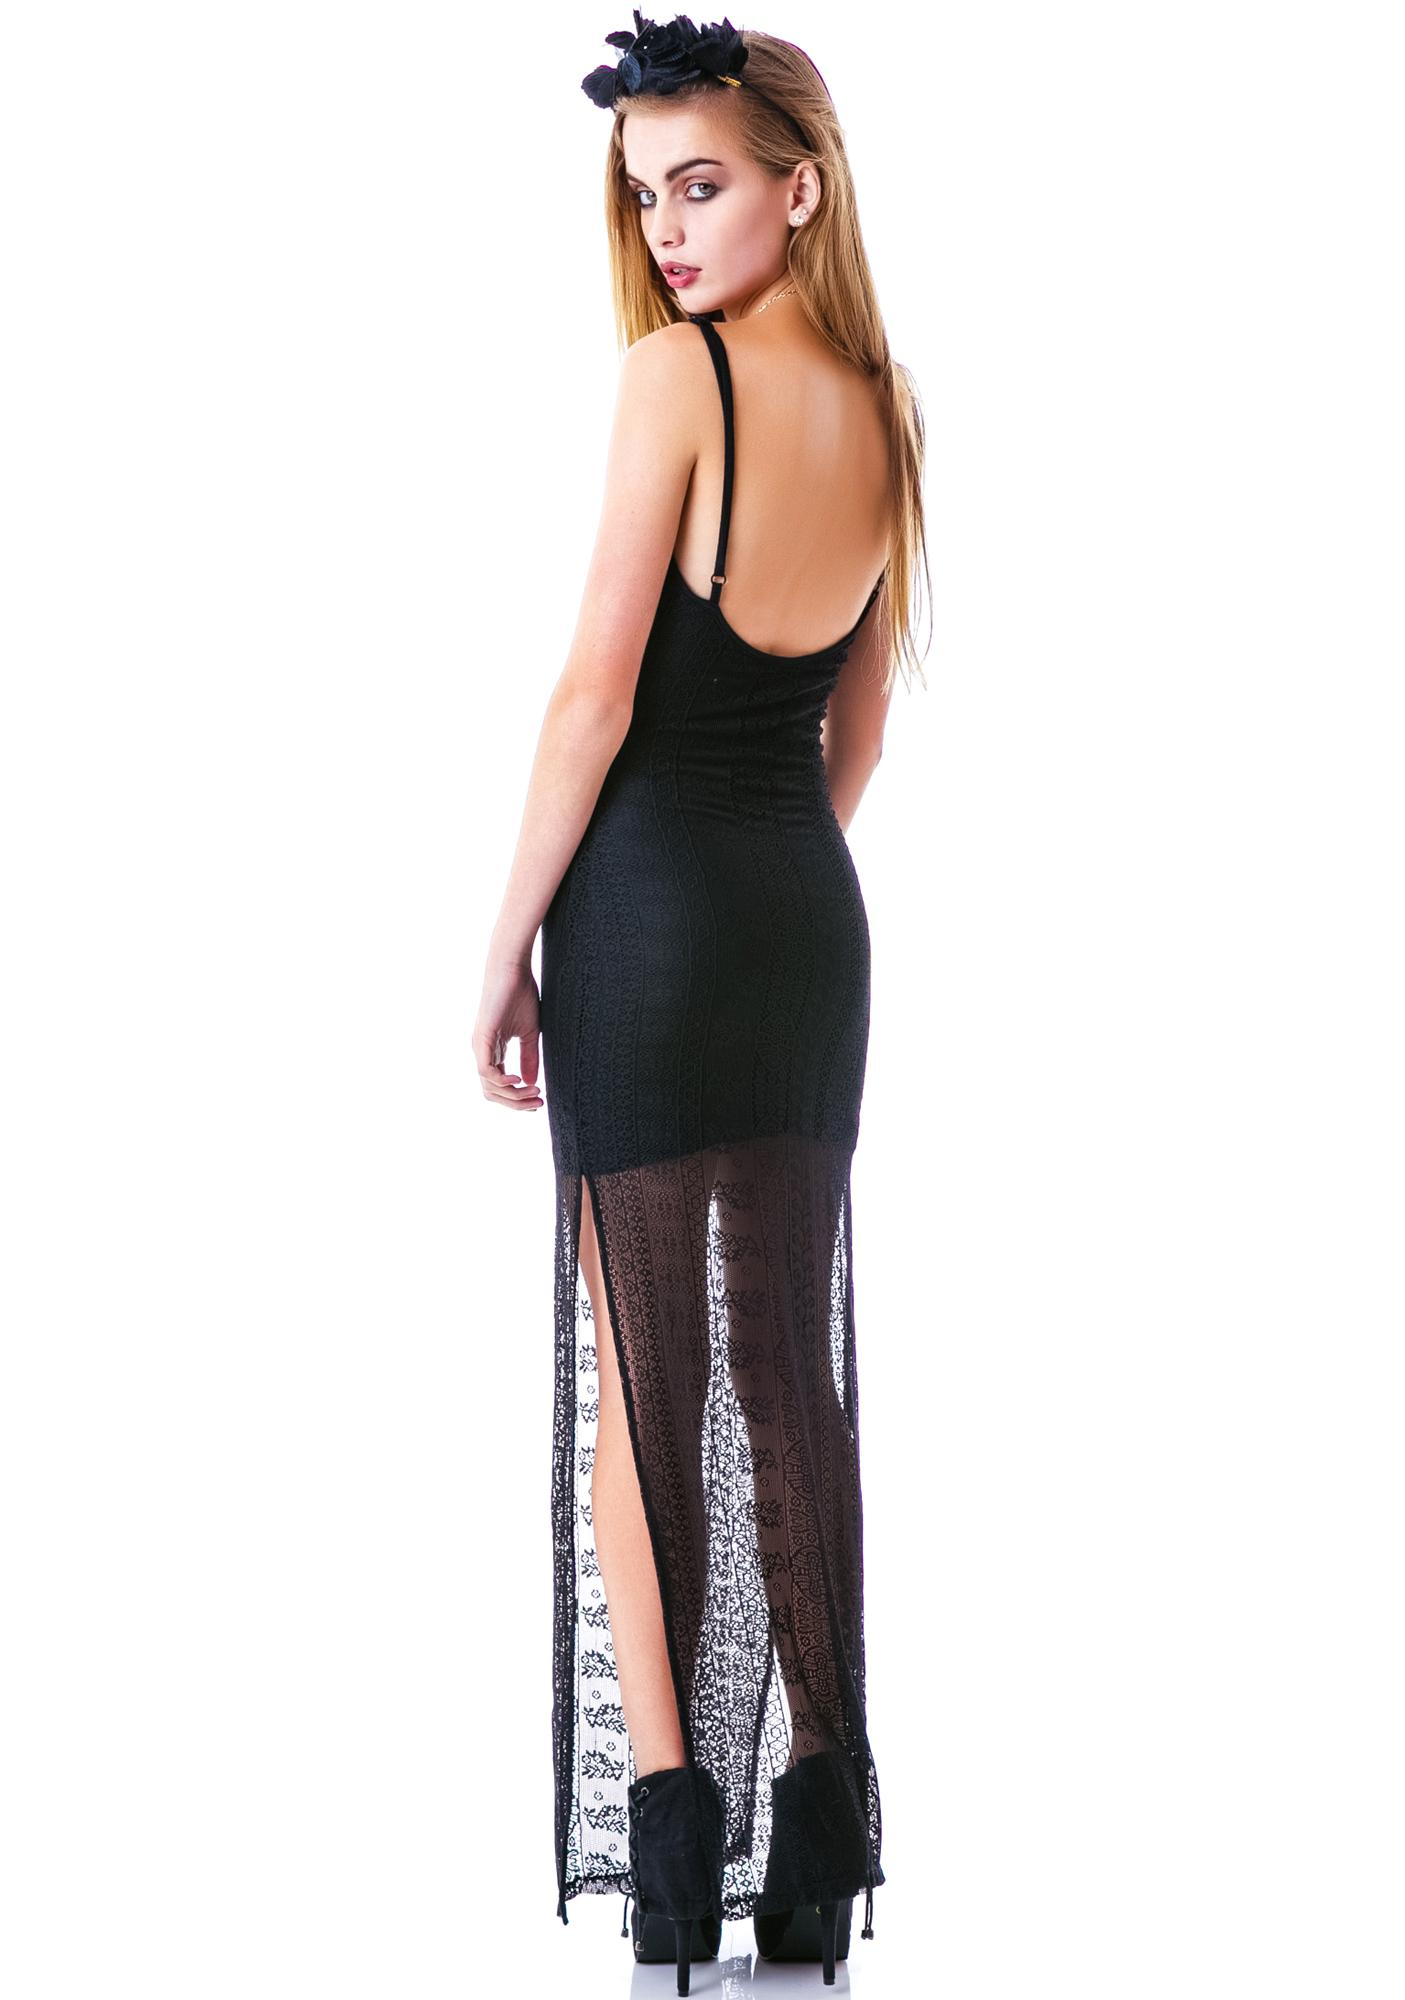 The Mourning Lace Maxi Dress